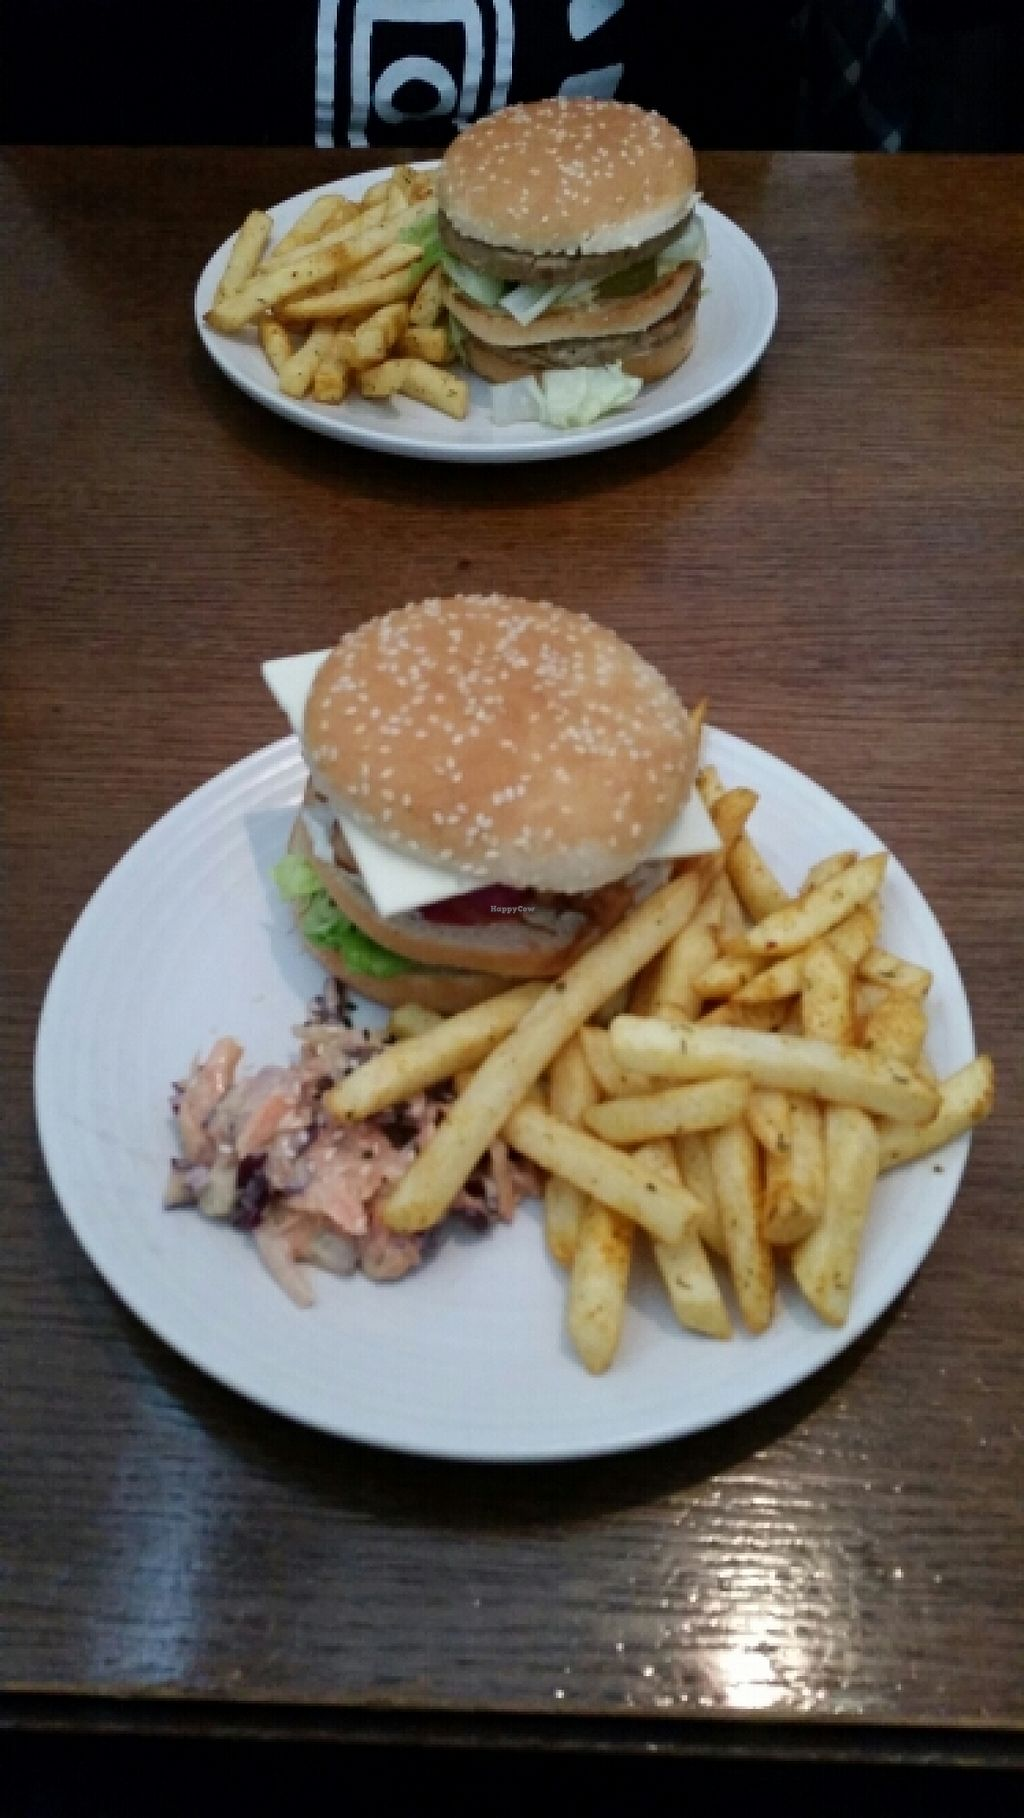 """Photo of CLOSED: Veg Bar  by <a href=""""/members/profile/Endless_night"""">Endless_night</a> <br/>BBQ Jackfruit sandwich!!! yum! <br/> February 9, 2016  - <a href='/contact/abuse/image/56985/135551'>Report</a>"""